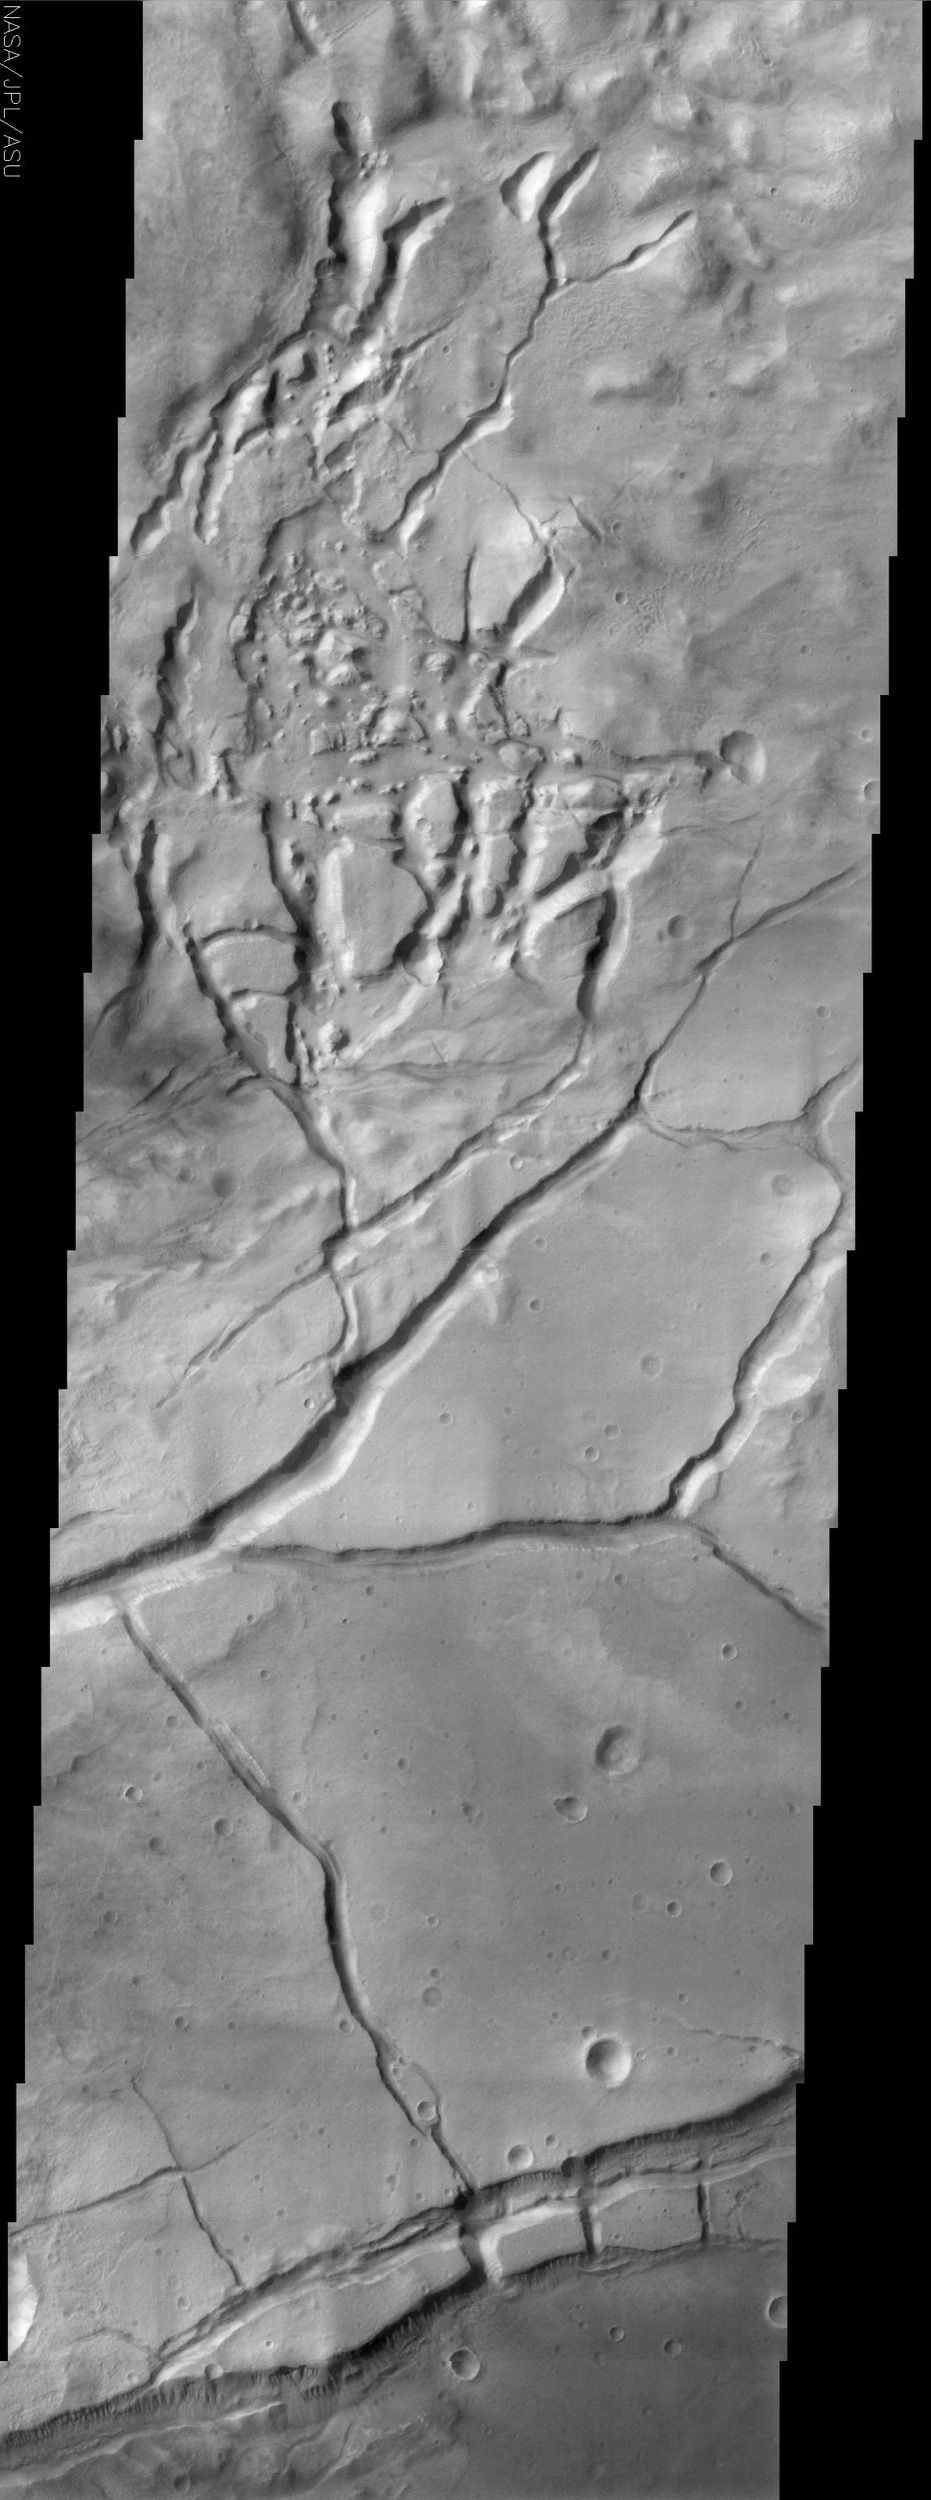 The fractured surface shown in this image from NASA's Mars Odyssey spacecraft belongs to a portion of a region called Gorgonum Chaos located in the southern hemisphere of Mars.